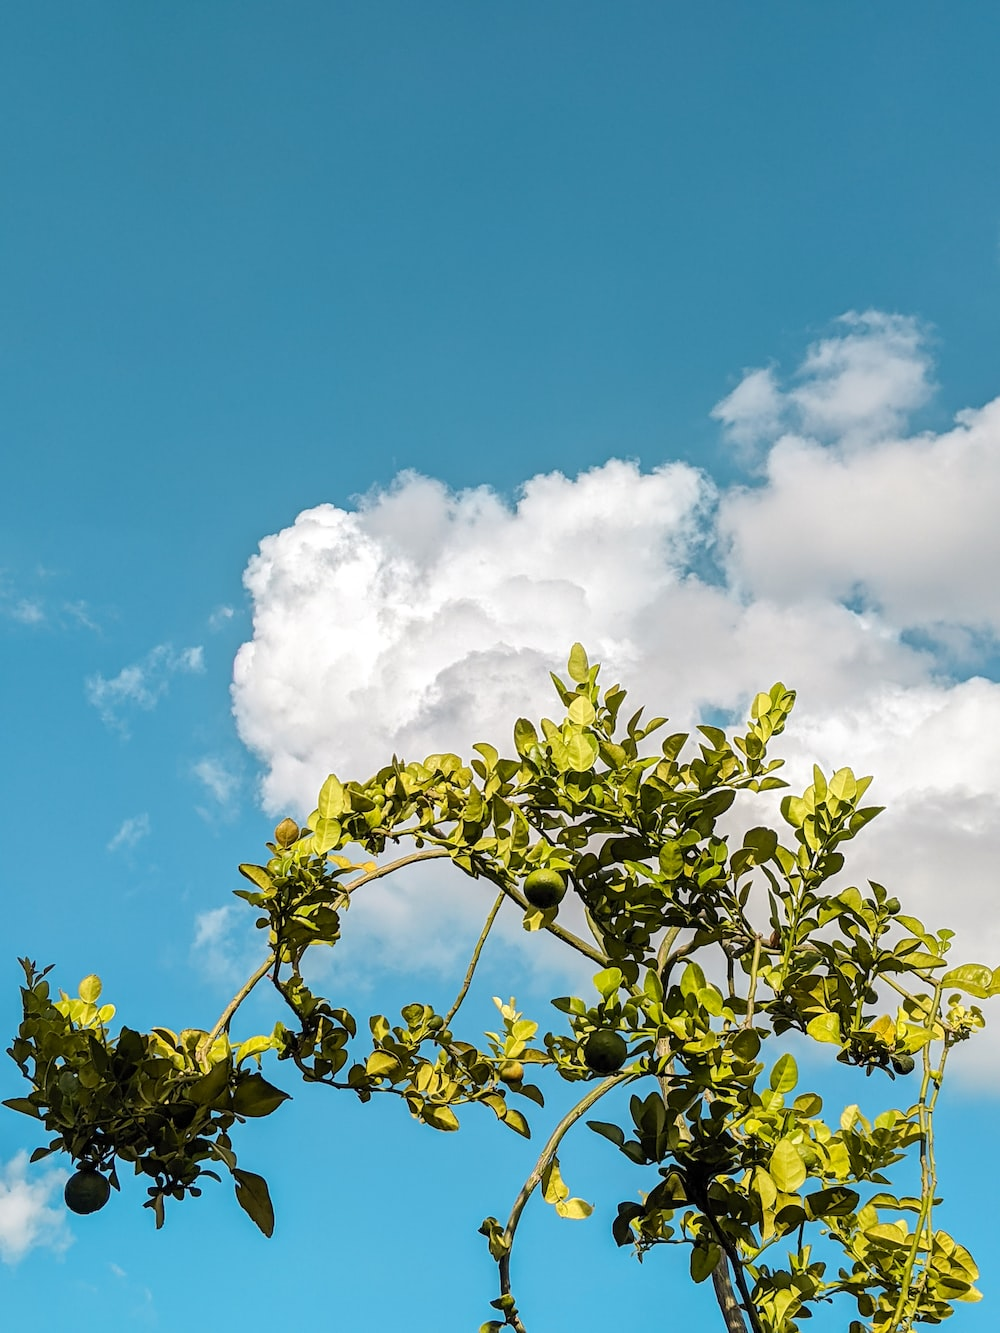 green leaved tree under blue and white sunny cloudy sky during daytime